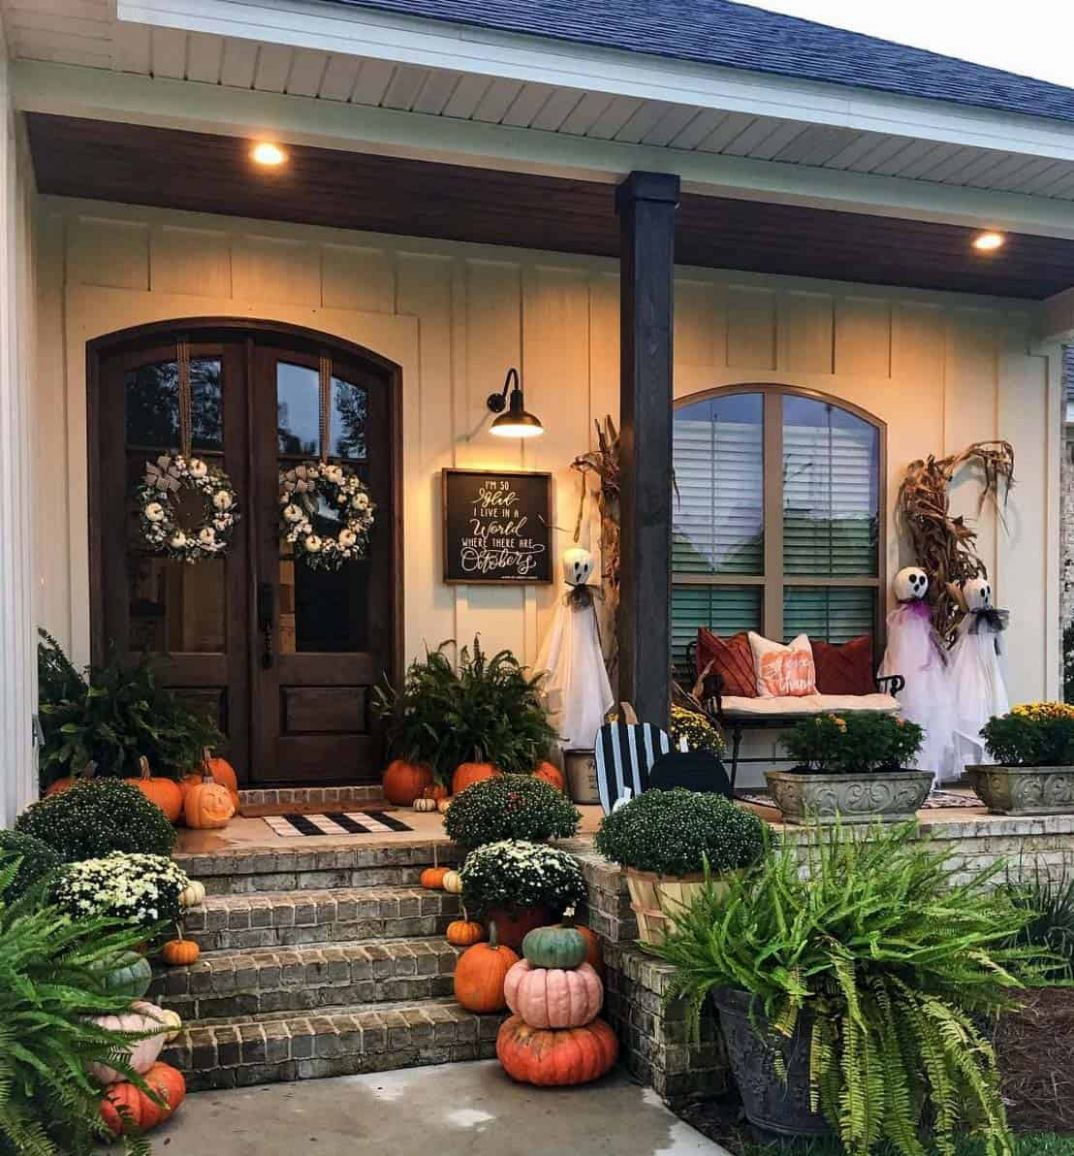 12+ Dreamy Ideas For Decorating Your Front Porch For Fall